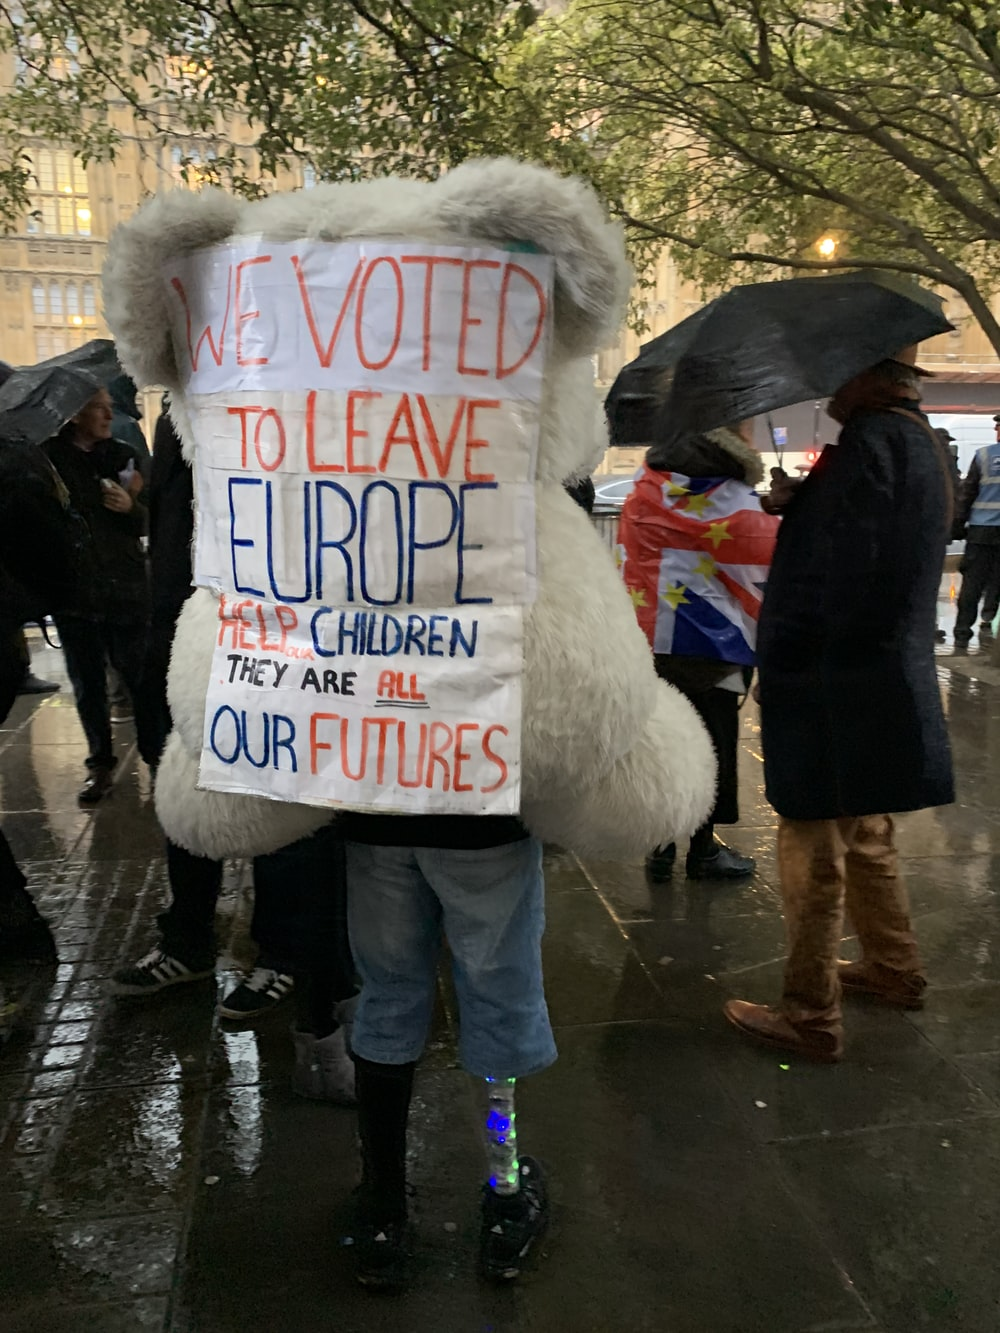 person holding we voted to leave Europe signage